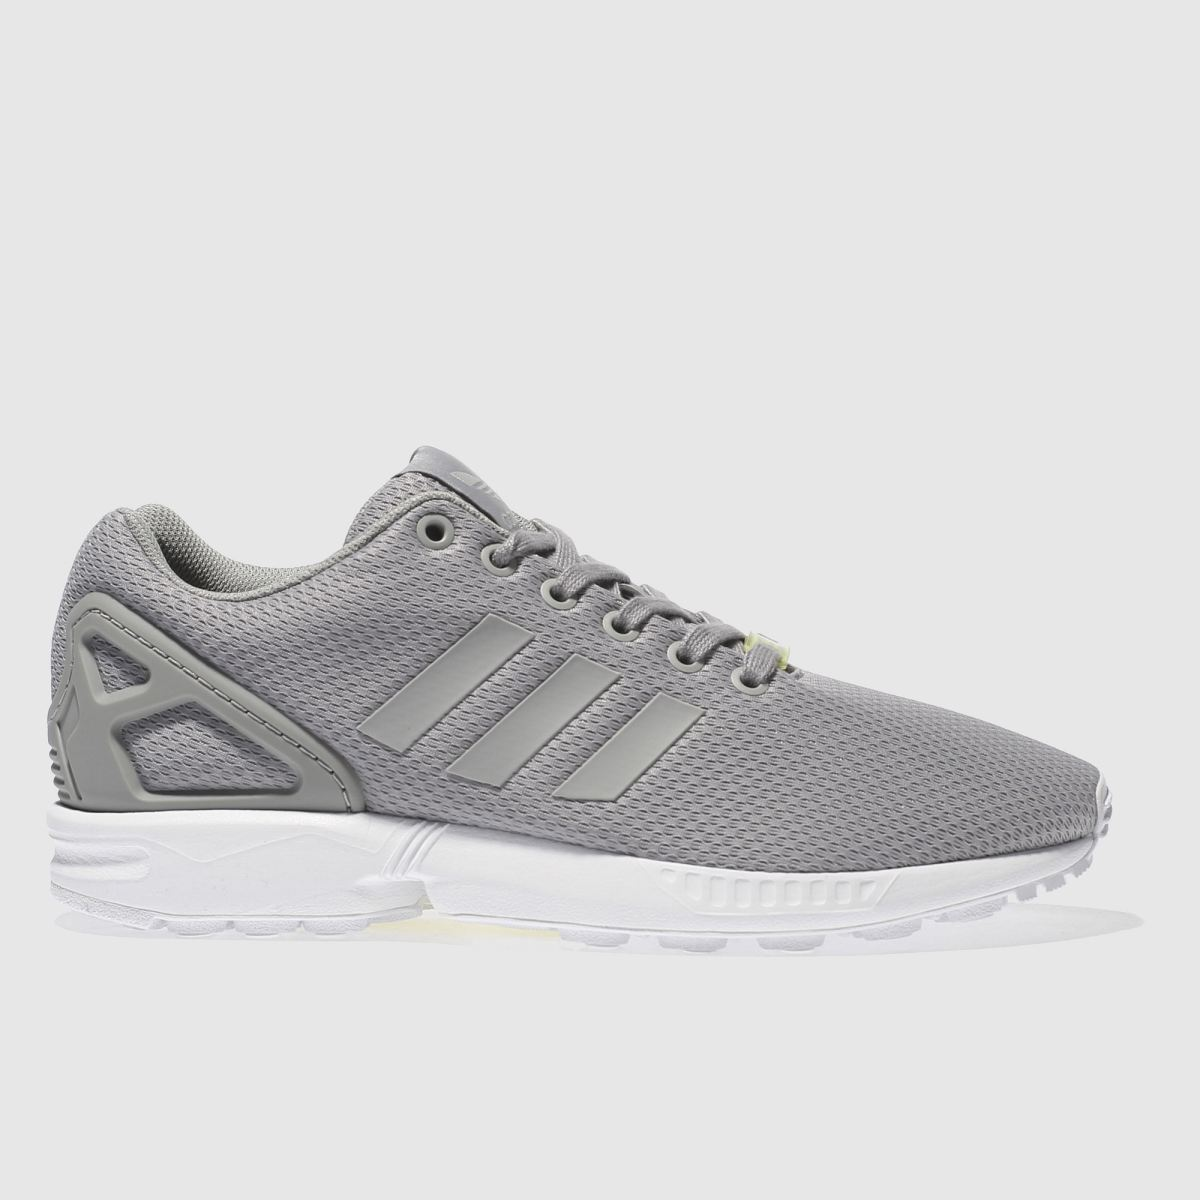 Adidas Zx Flux Grey Womens